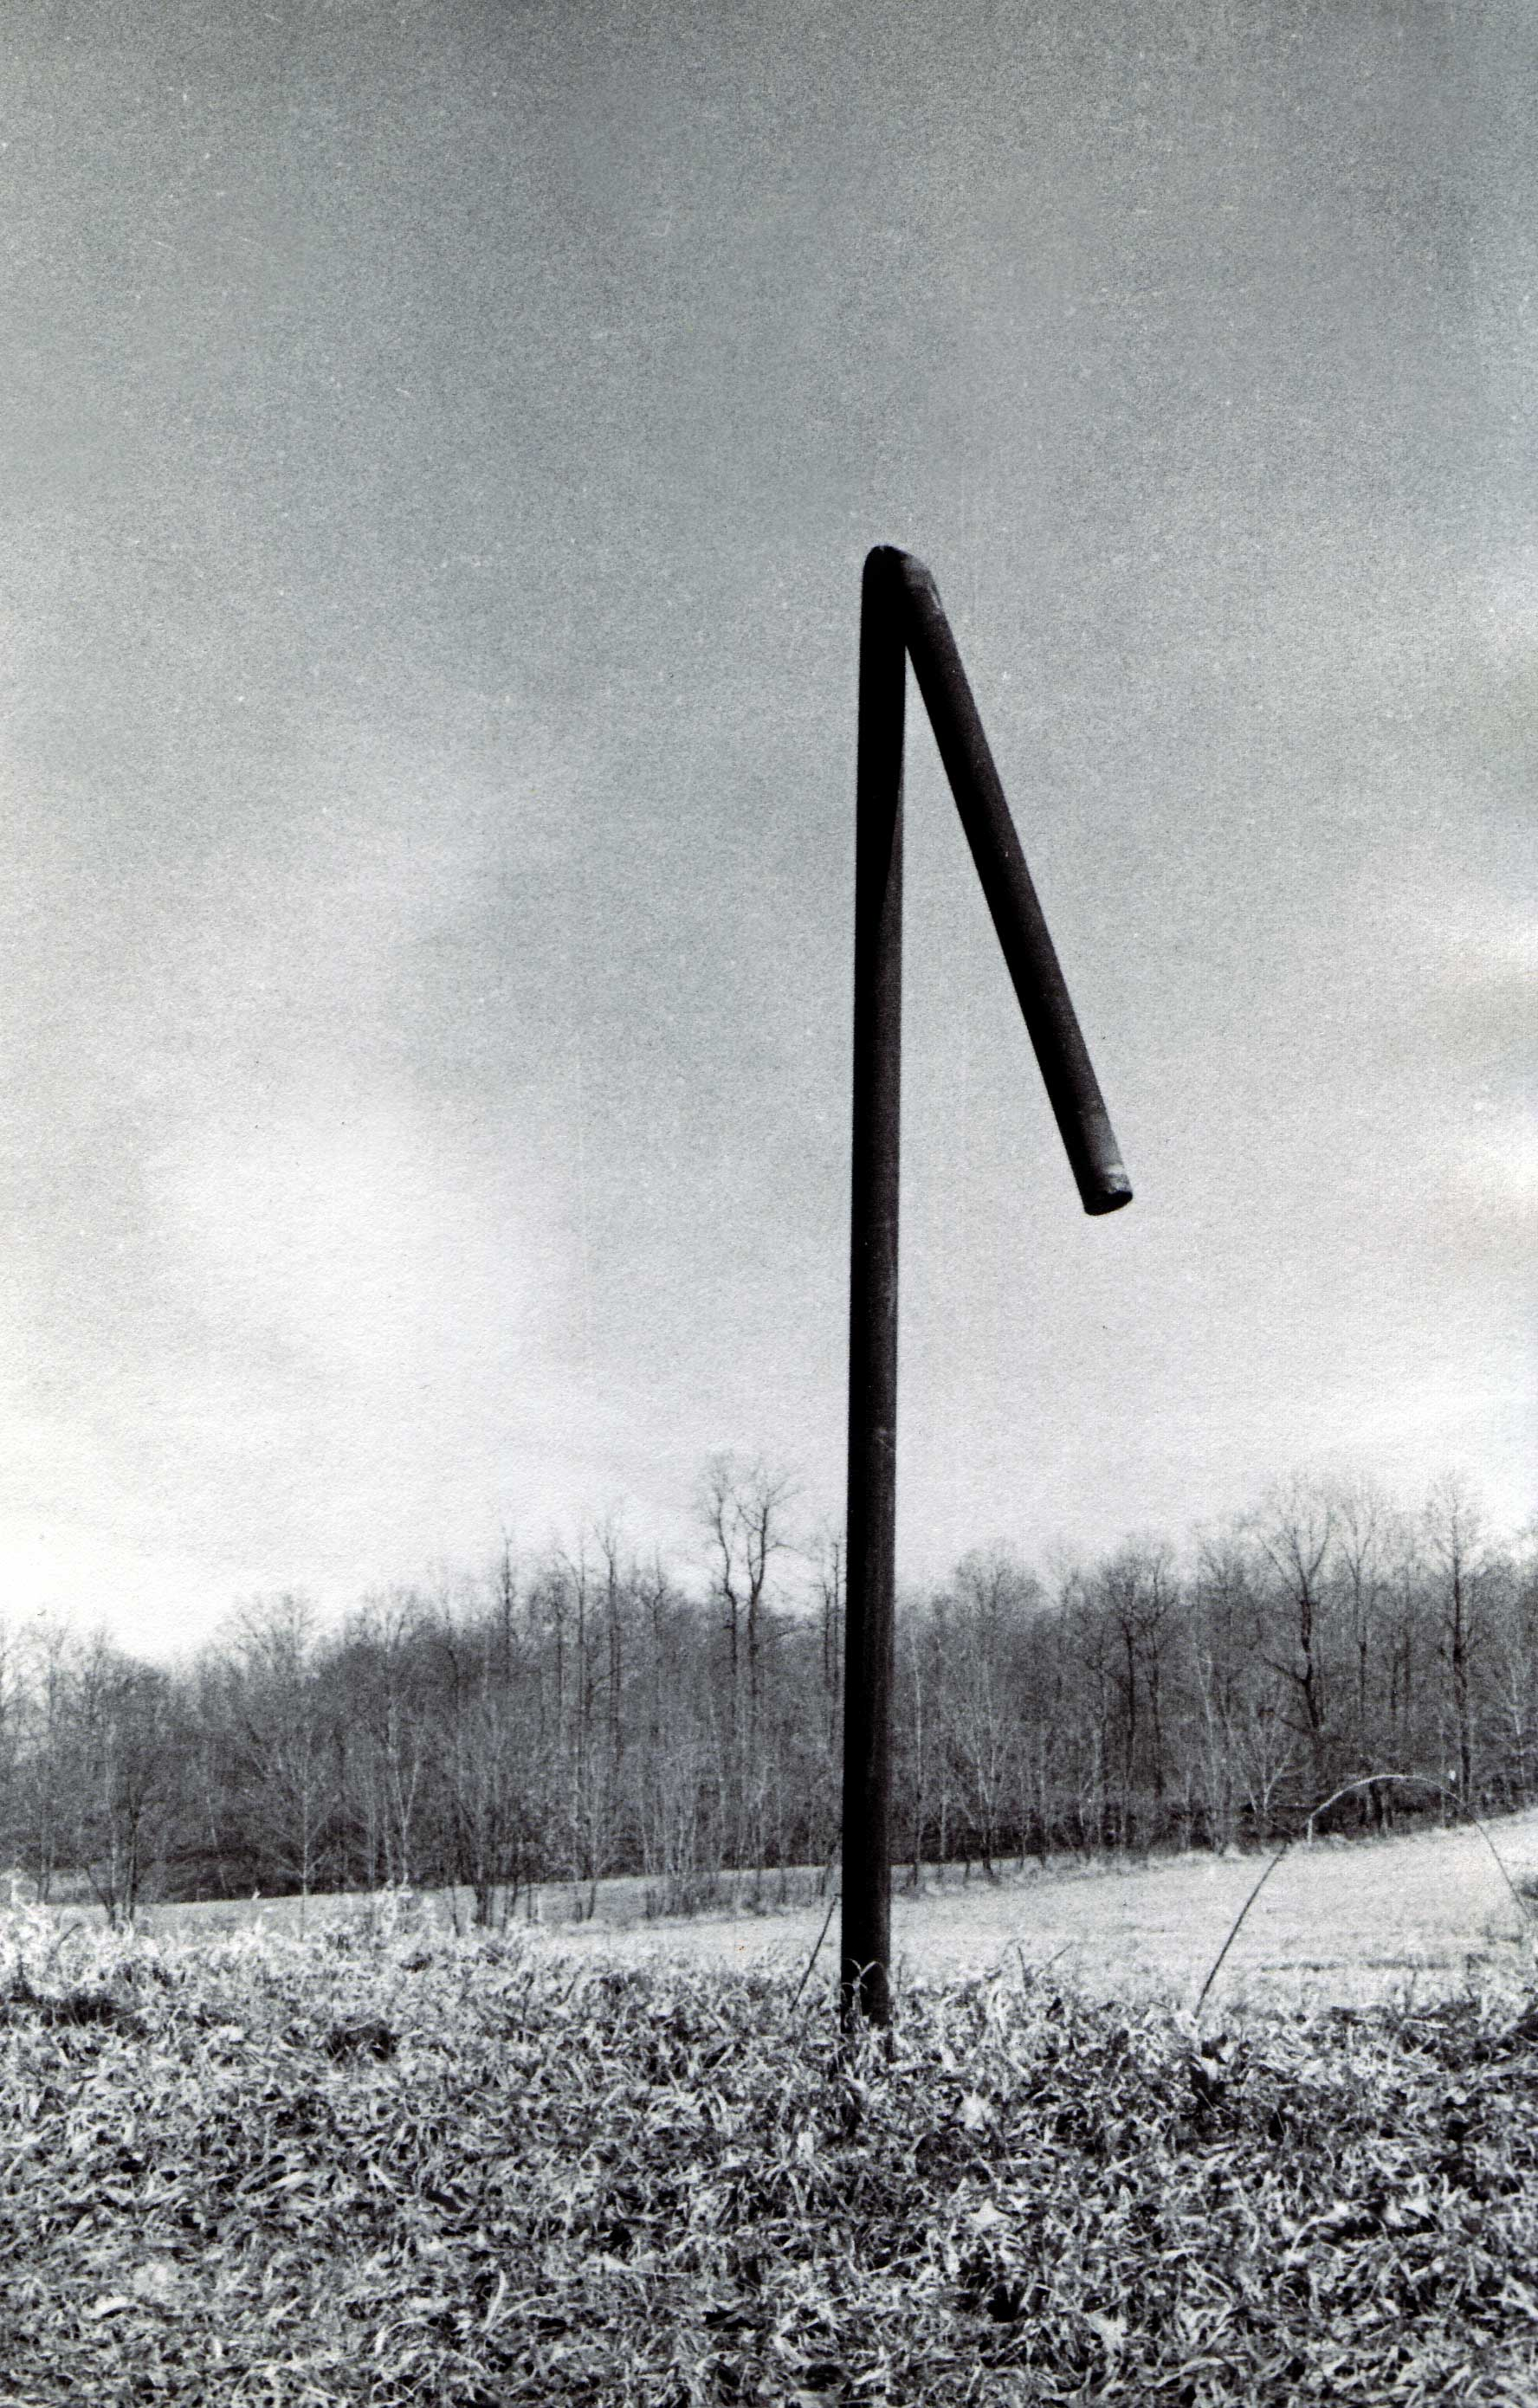 04_Pole_Piece_1970_Gary_Kuehn